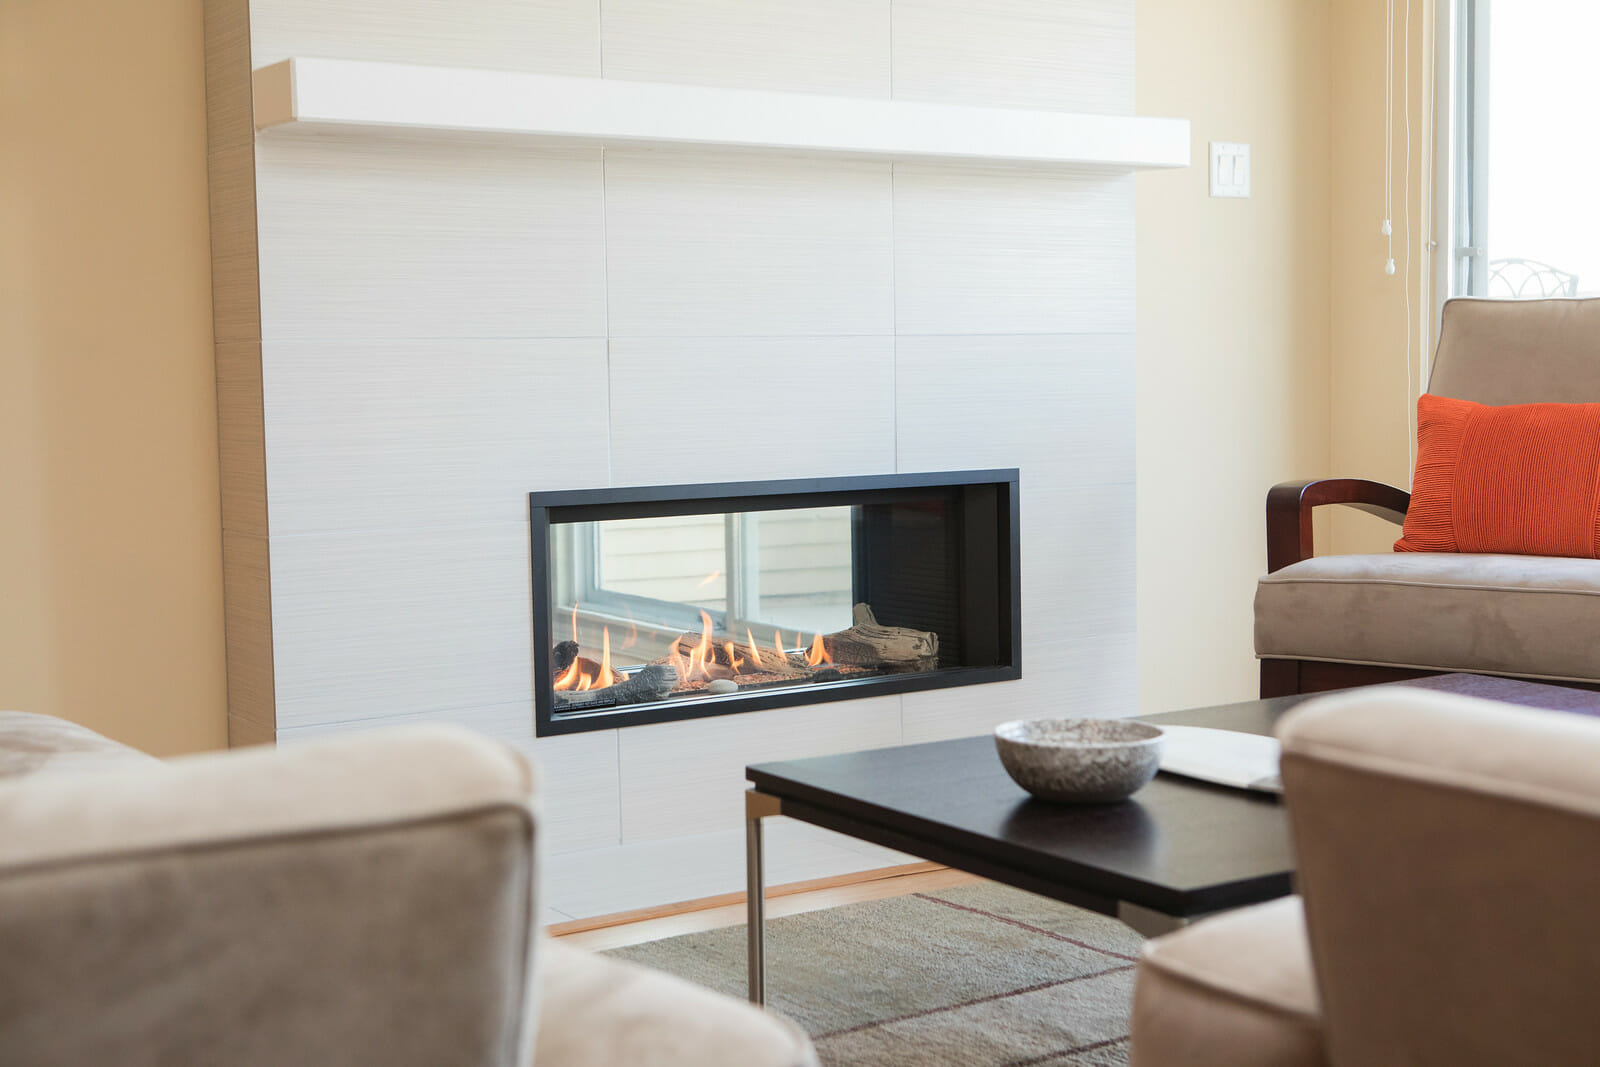 L1 See Thru Series Edwards And Sons Hearth And Home